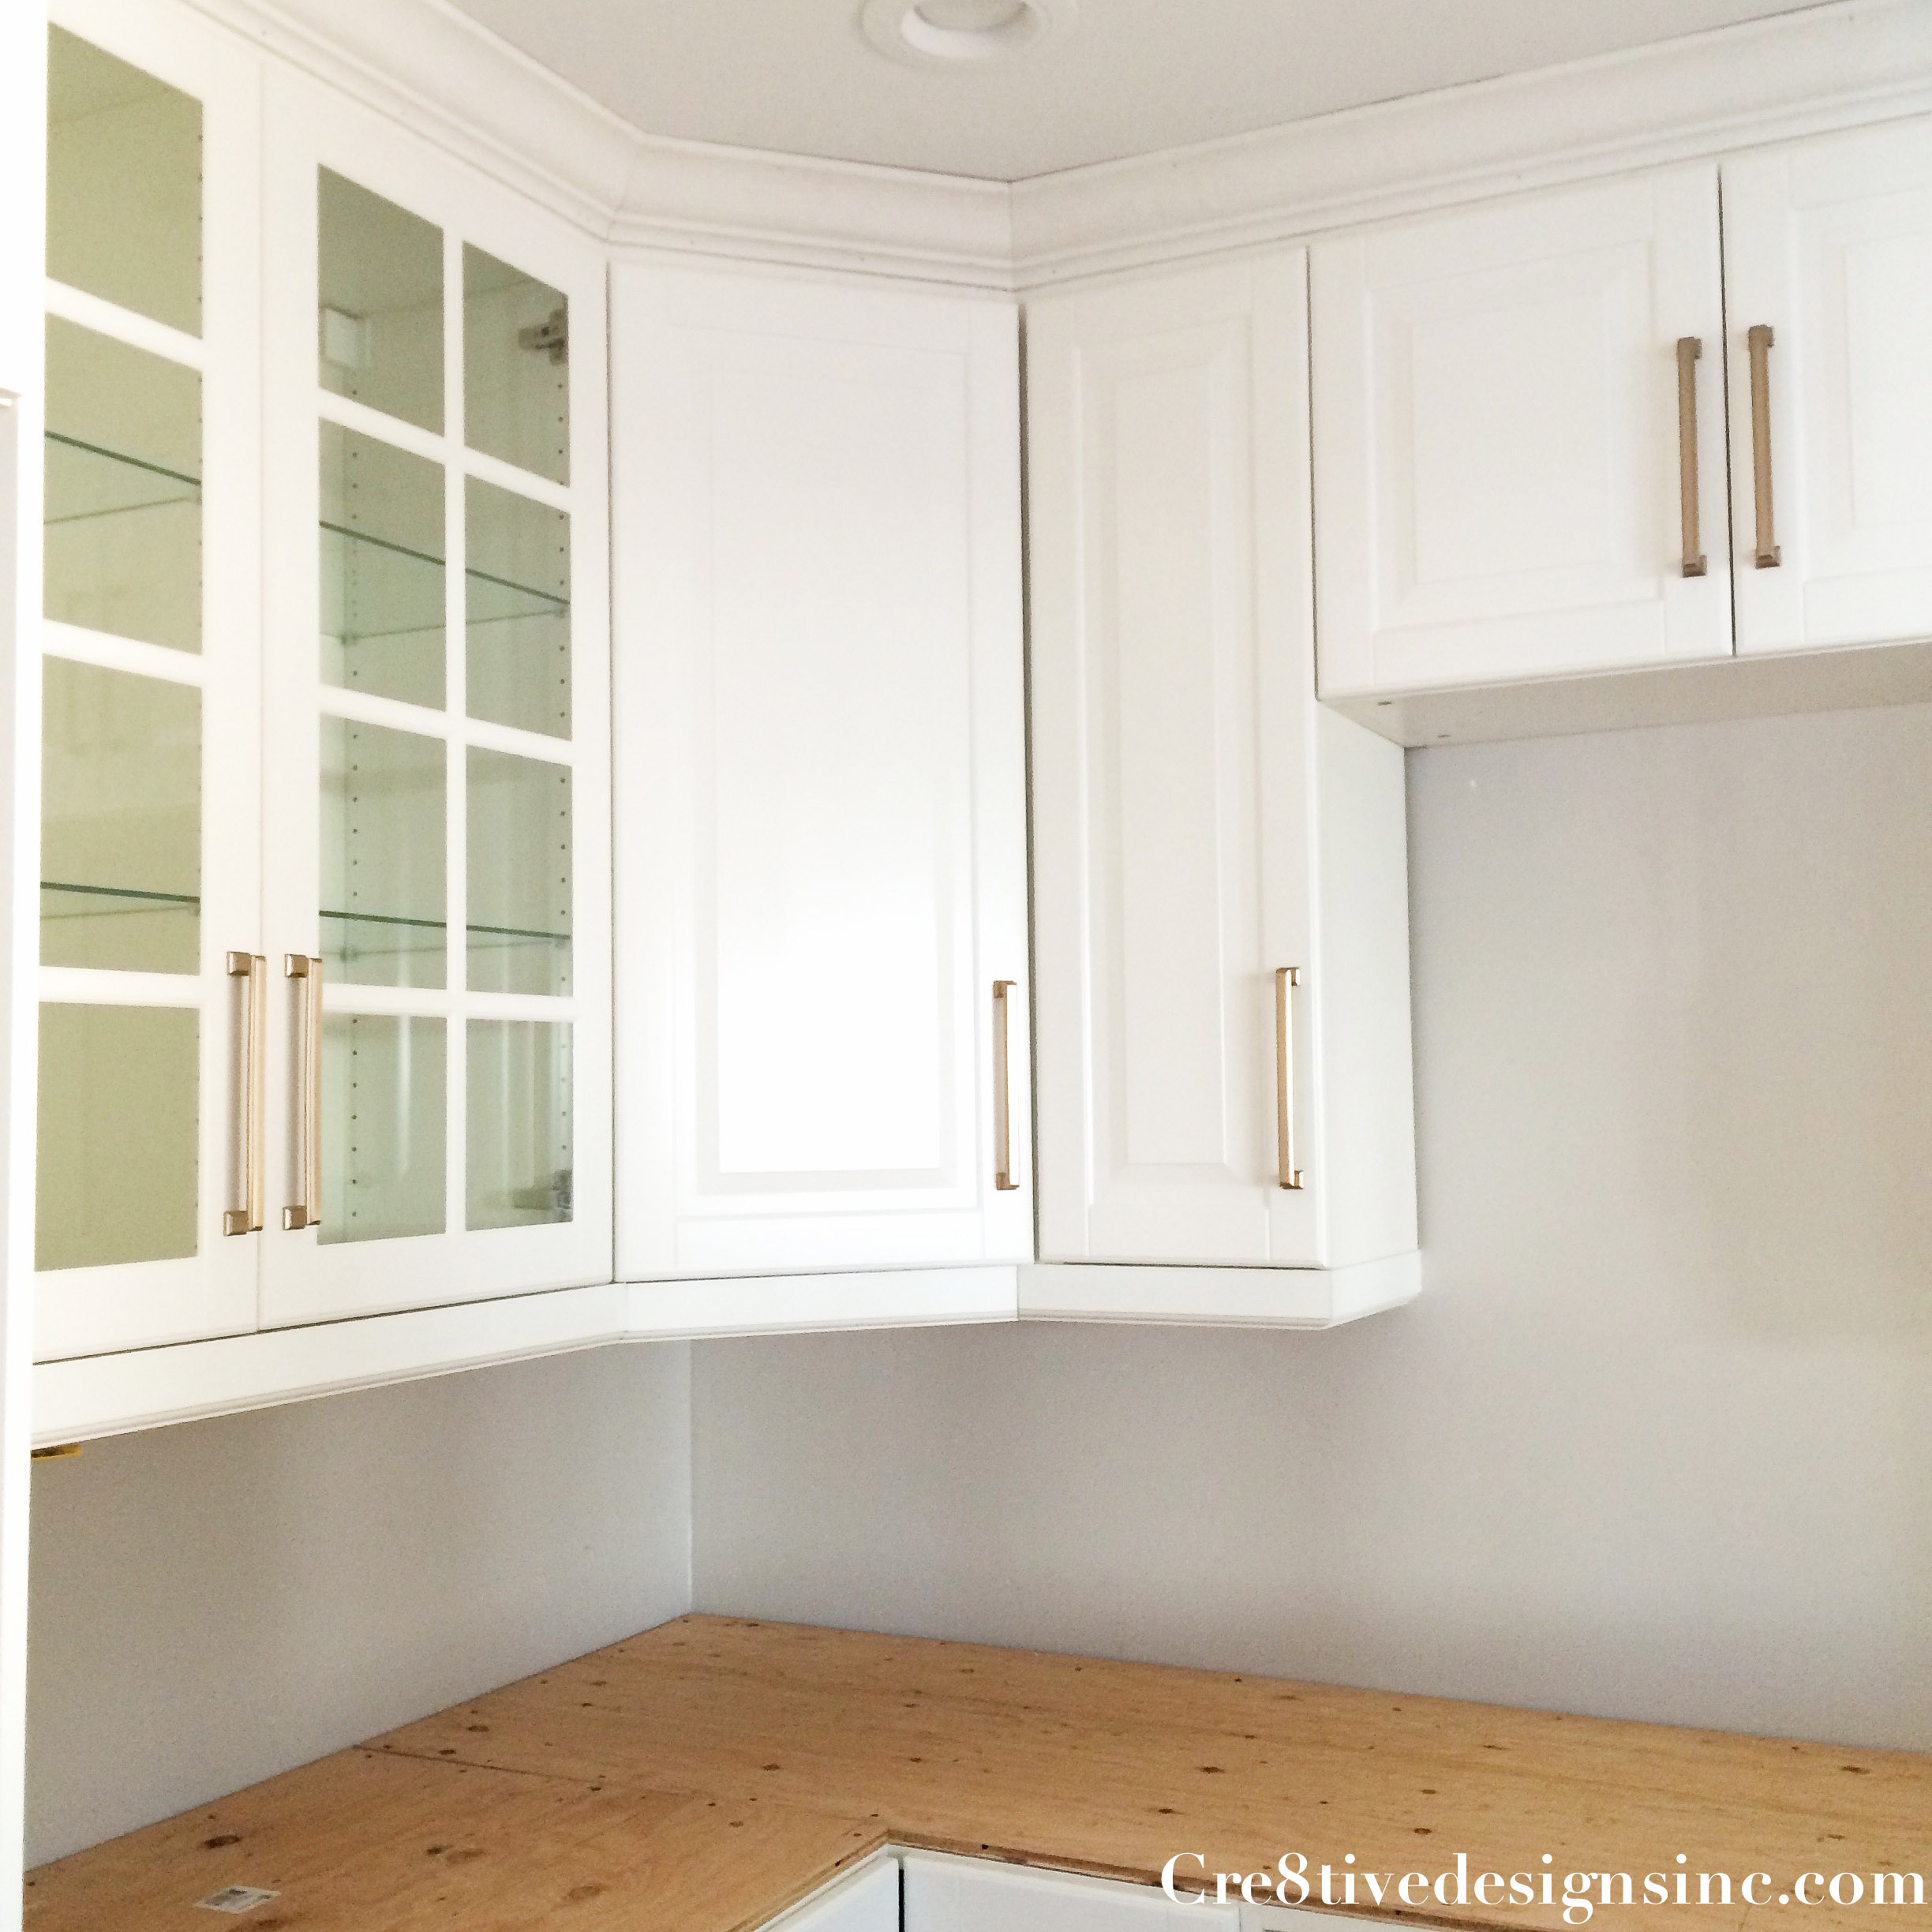 How To Put Glass In Kitchen Cabinet Doors: Kitchen Remodel Using Ikea Cabinets